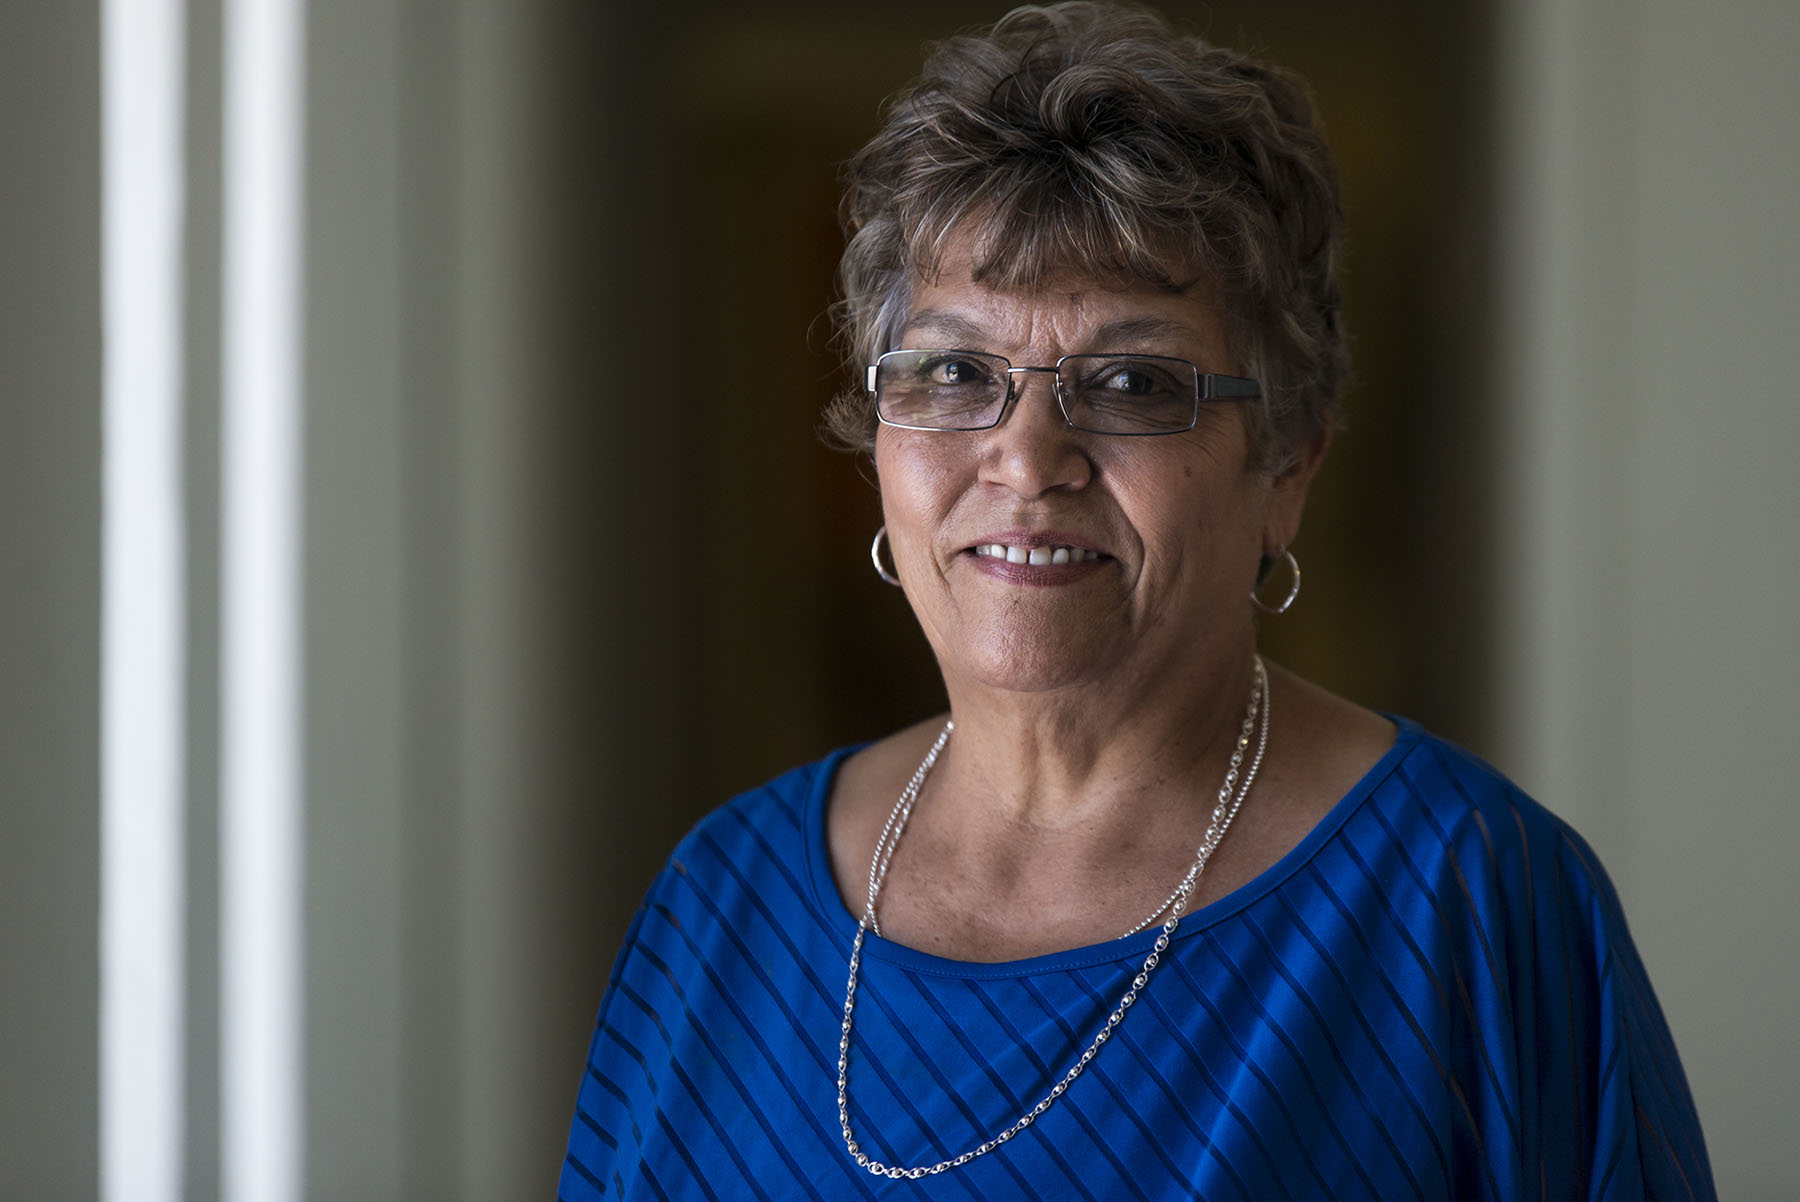 Gloria Torres serves as a city councilwoman and school board member in the border town of San Luis, Arizona. (Photo by Roman Knertser, audio by Pam Ortega/News21)